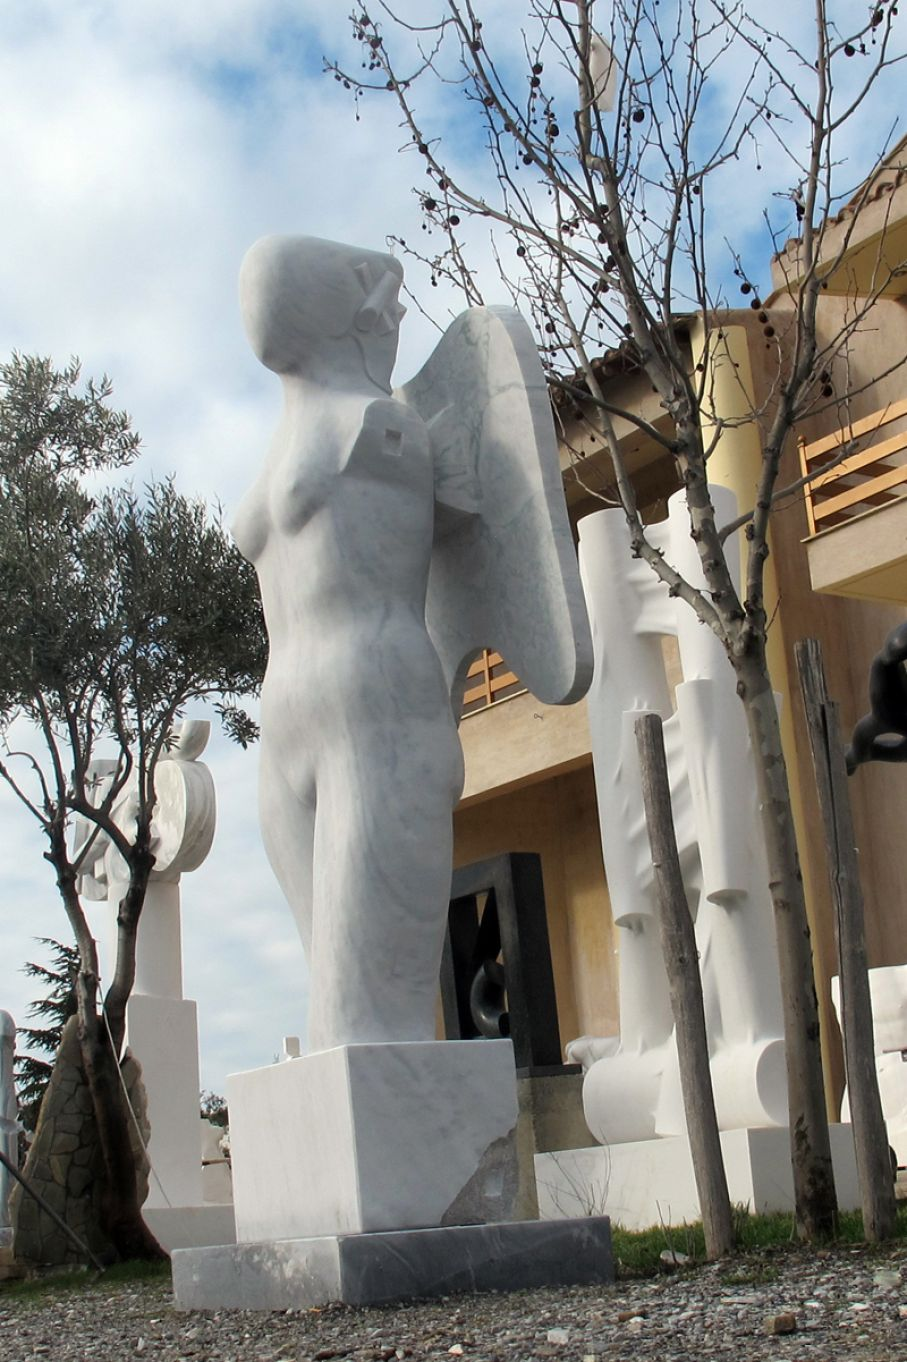 BRIEF DESCRIPTION. Original marble sculpture of  Giorgie Cpajak, completed within Myrό Antiques House premises, in Souroti, Thessaloniki, GREECE, as part of the Greek Marble Initiative. Dimensions: 270 X 92 X 80 cm (with a base and a pedestral as depicted).